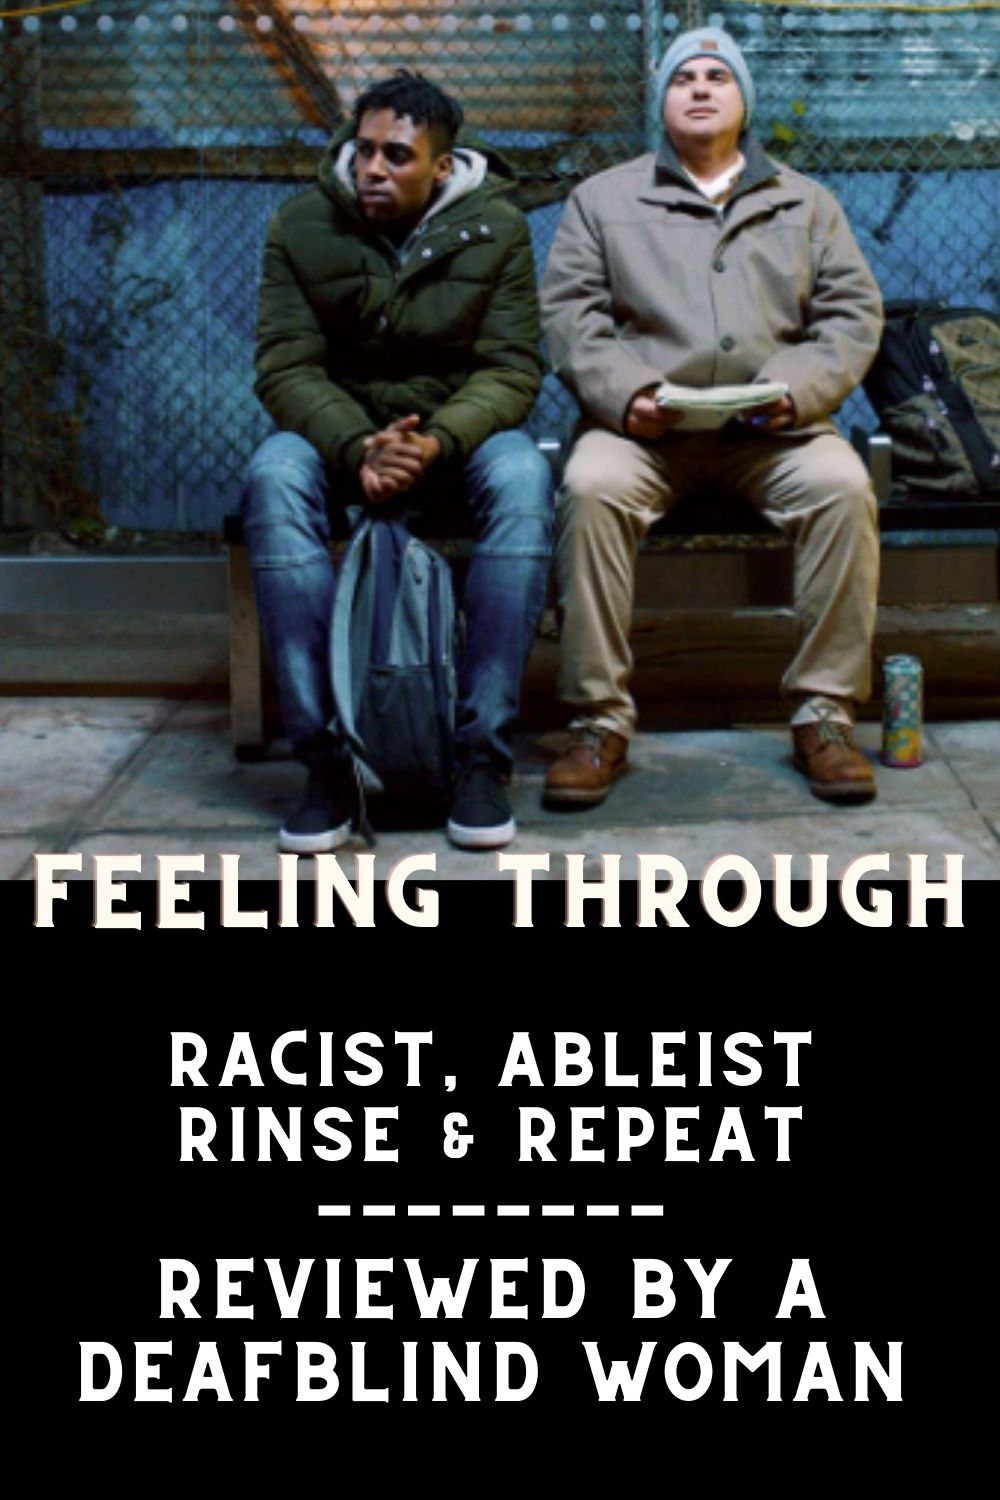 """image of two men sitting on a bench, one is black and with green hoodie, hunching over with his hands on a backpack, the other is white and in a tan jacket and hat, looking up with a half smile as he holds paper. text reads, """"feeling through, racist, ableism, rinse & repeat; reviewed by a deaf blind woman"""""""